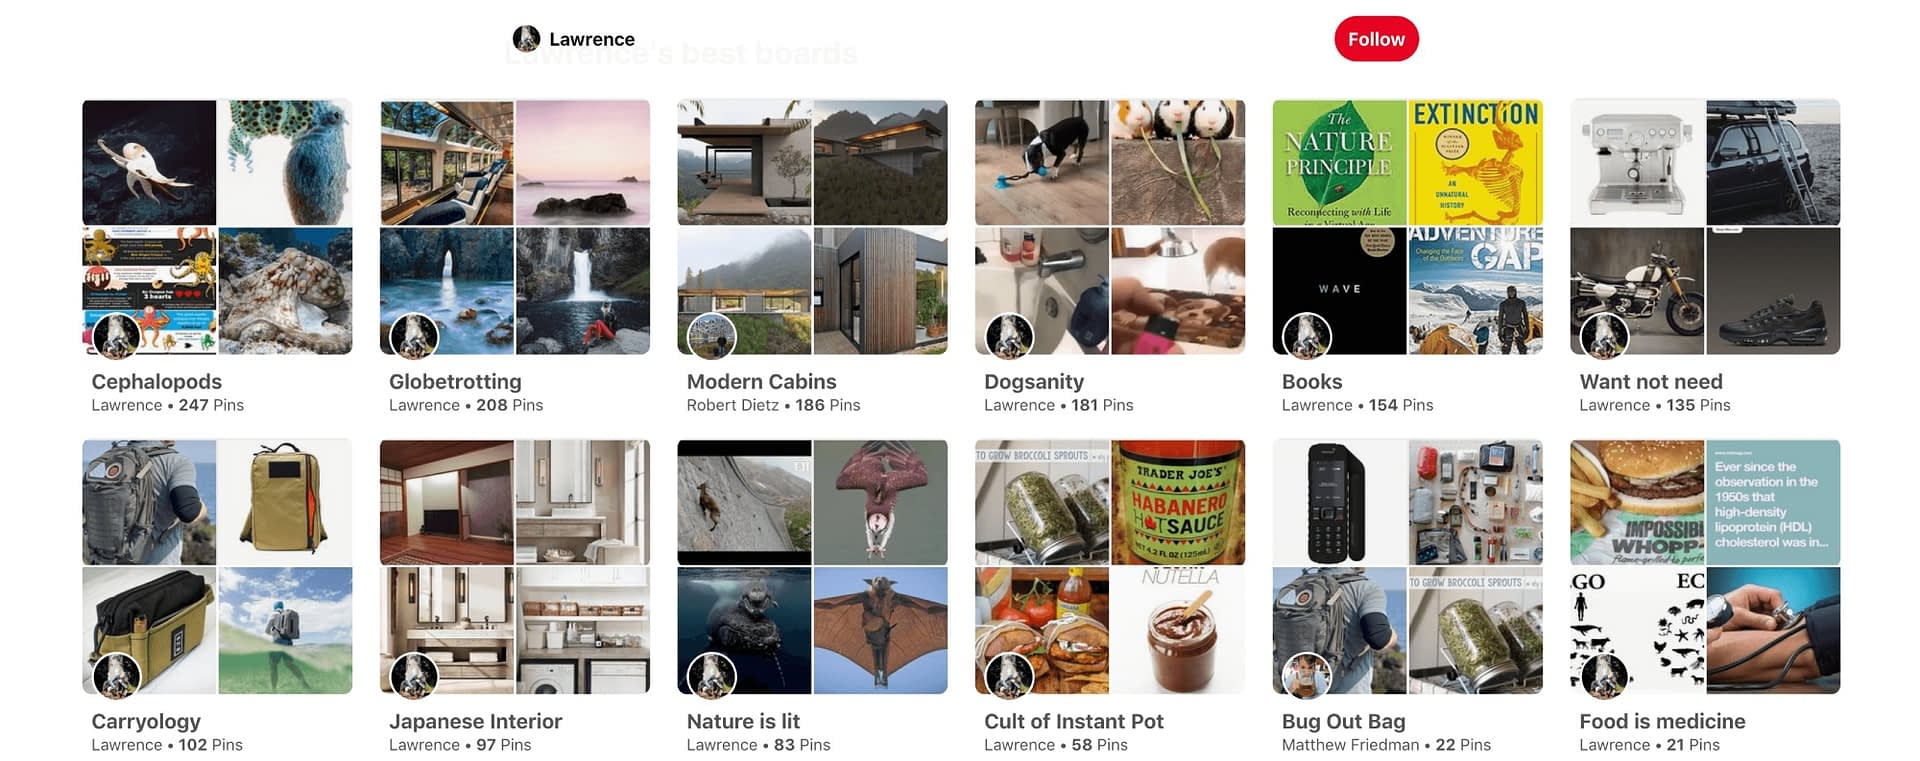 Showing sections within Pinterest.